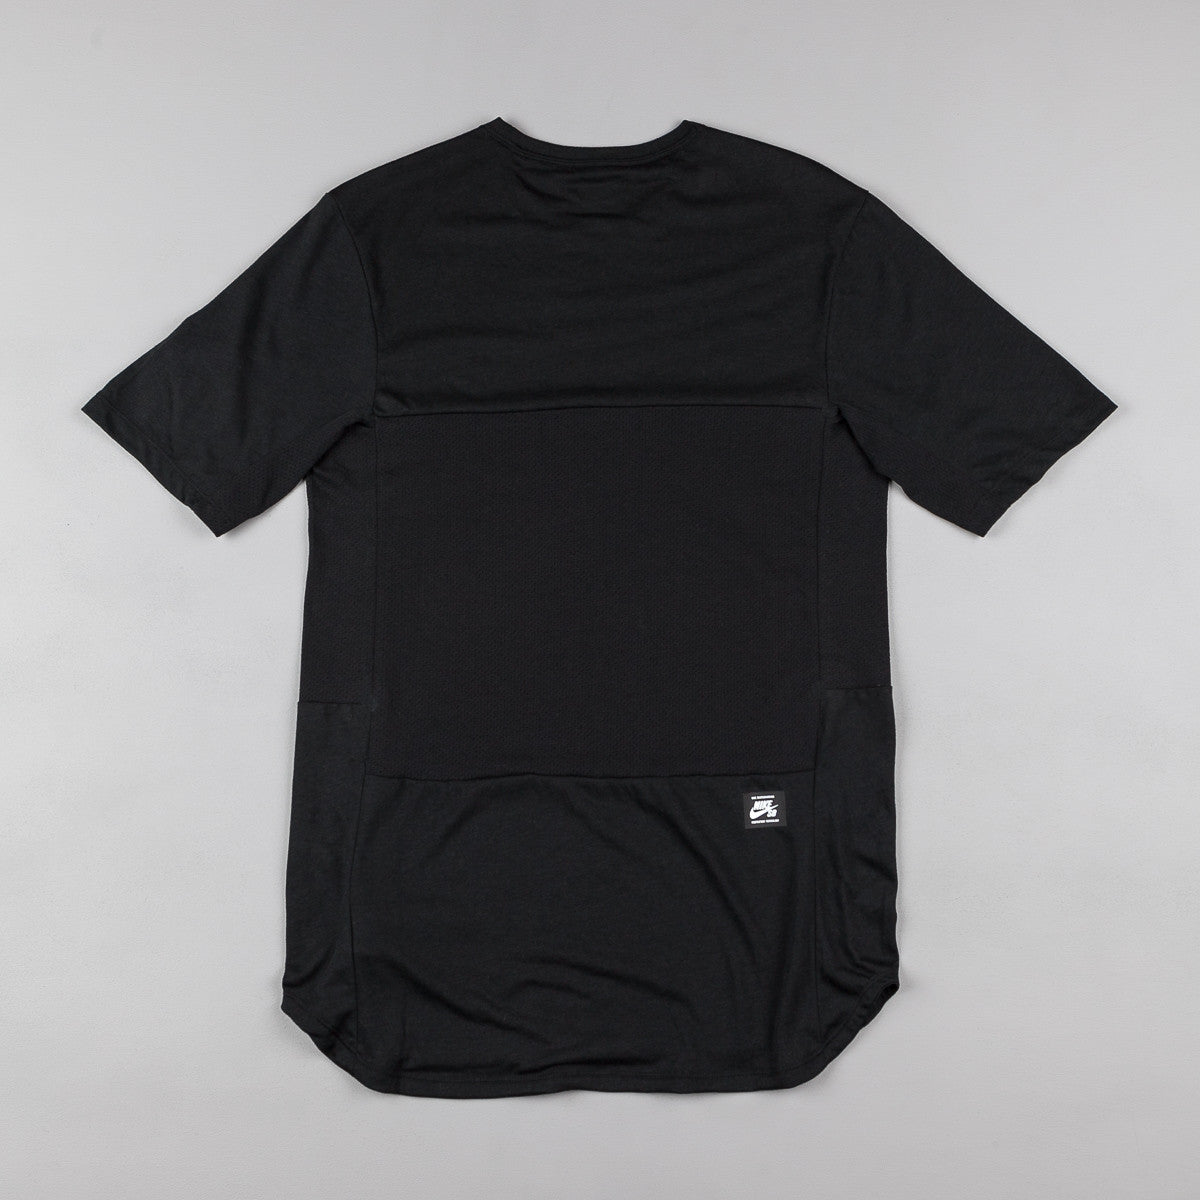 Nike SB Skyline Dri-FIT Cool T-Shirt - Black / Black / White